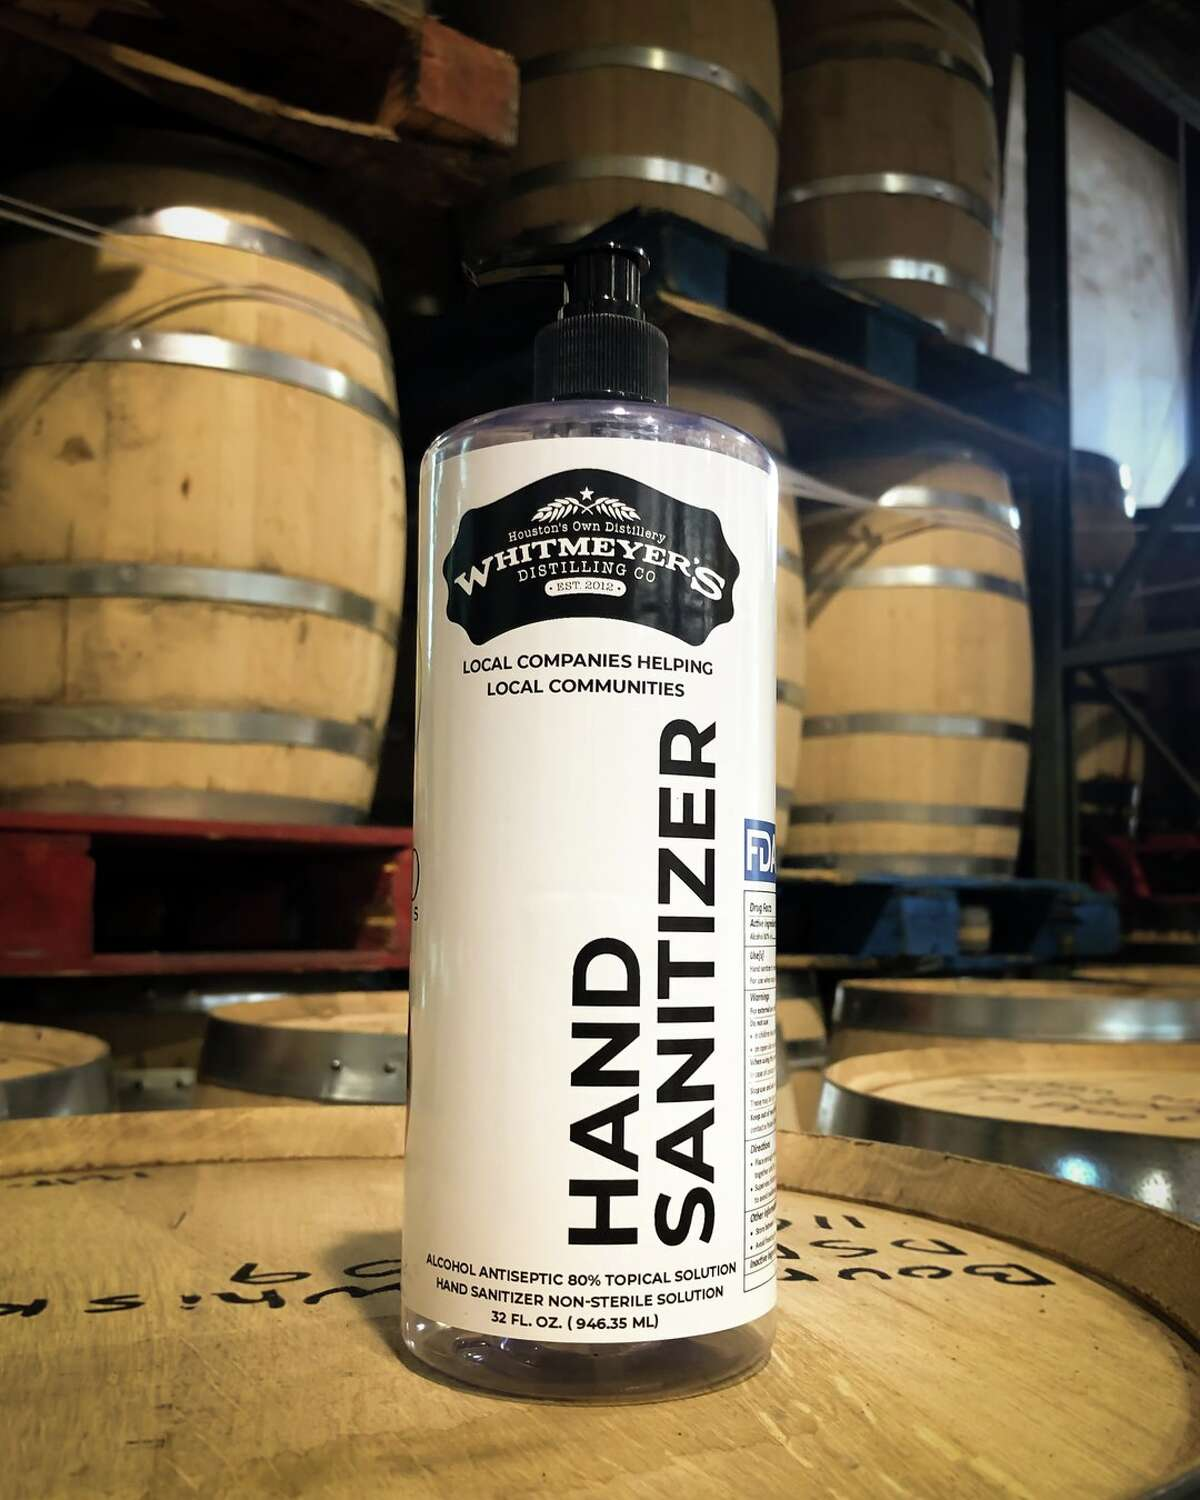 Whitmeyer's Distilling Co. is using 16,496 square feetat 204 S. Live Oak Street in Tomball for the bottling and distribution of hand sanitizer, which began in response to COVID-19.